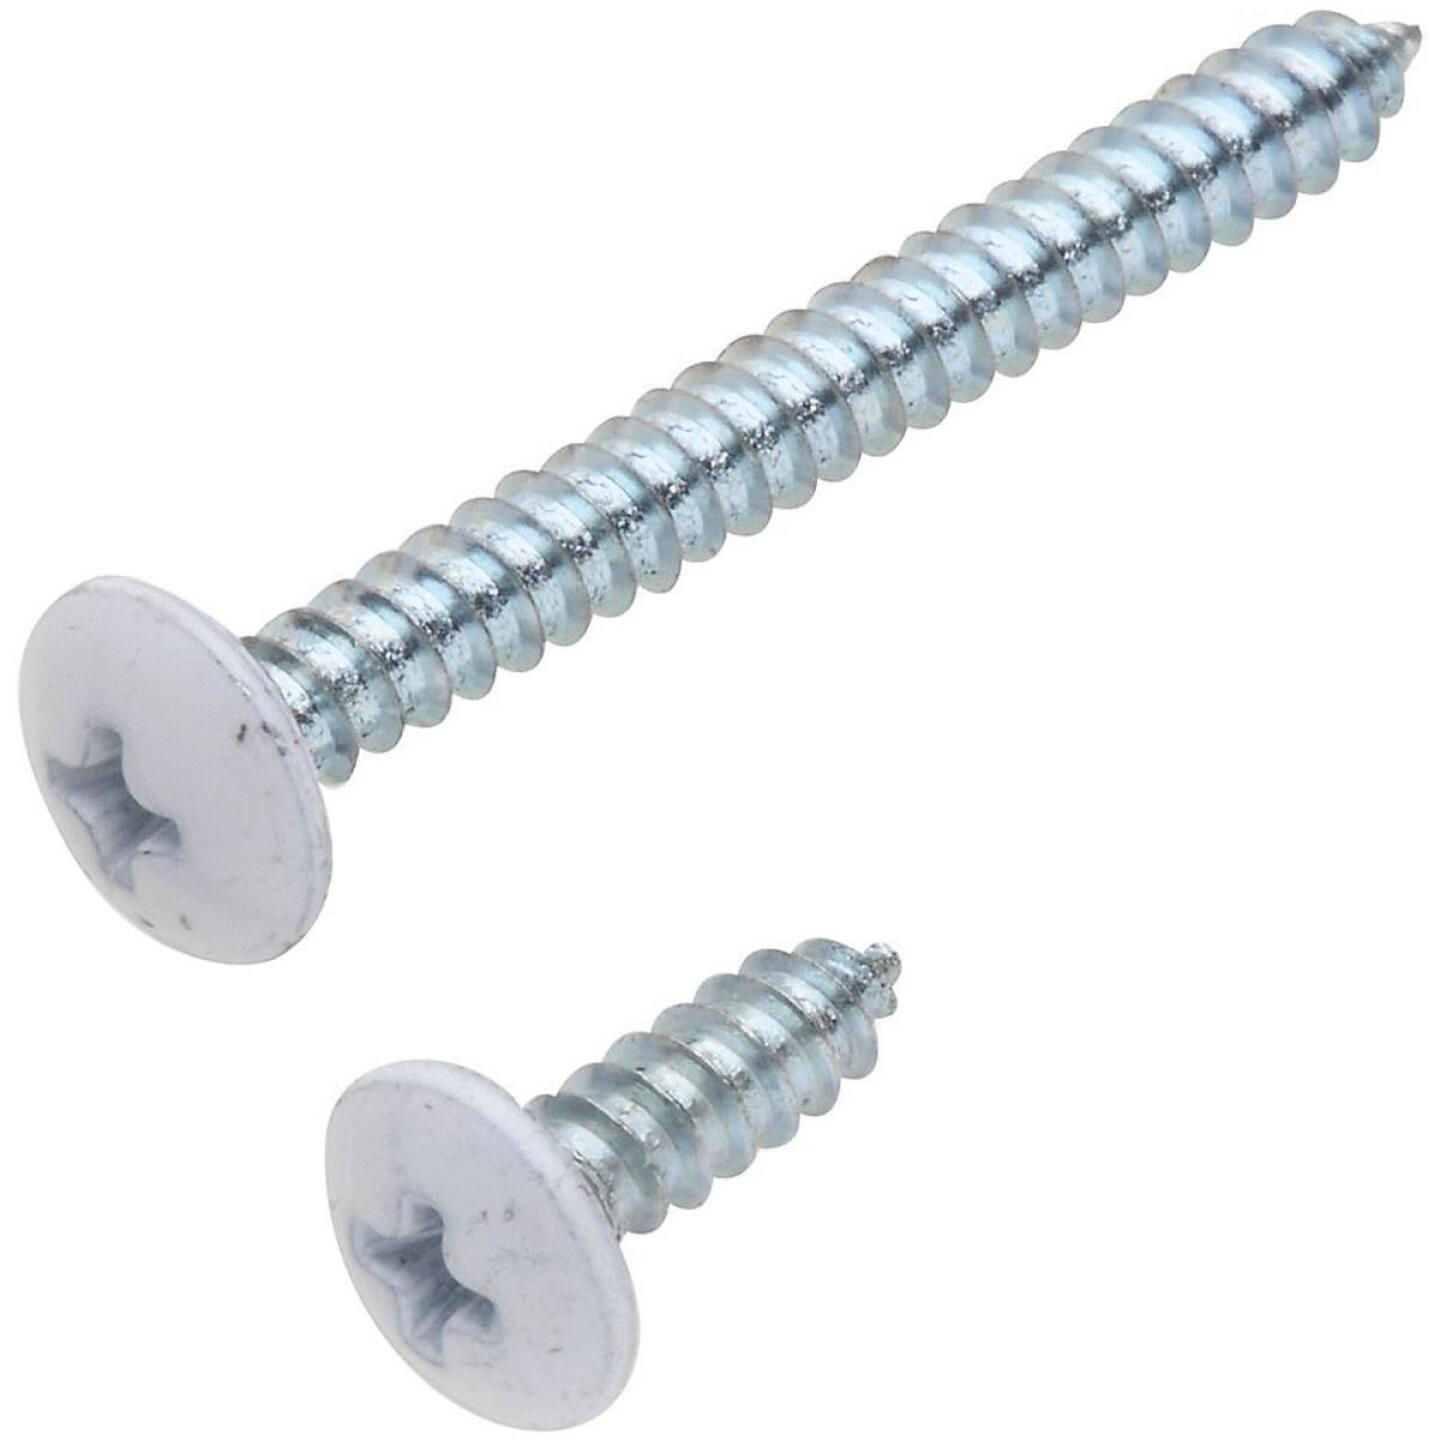 National 152 Phillips Truss Ornamental Steel Shelf Bracket Screw, Antique White (8-Count) Image 1